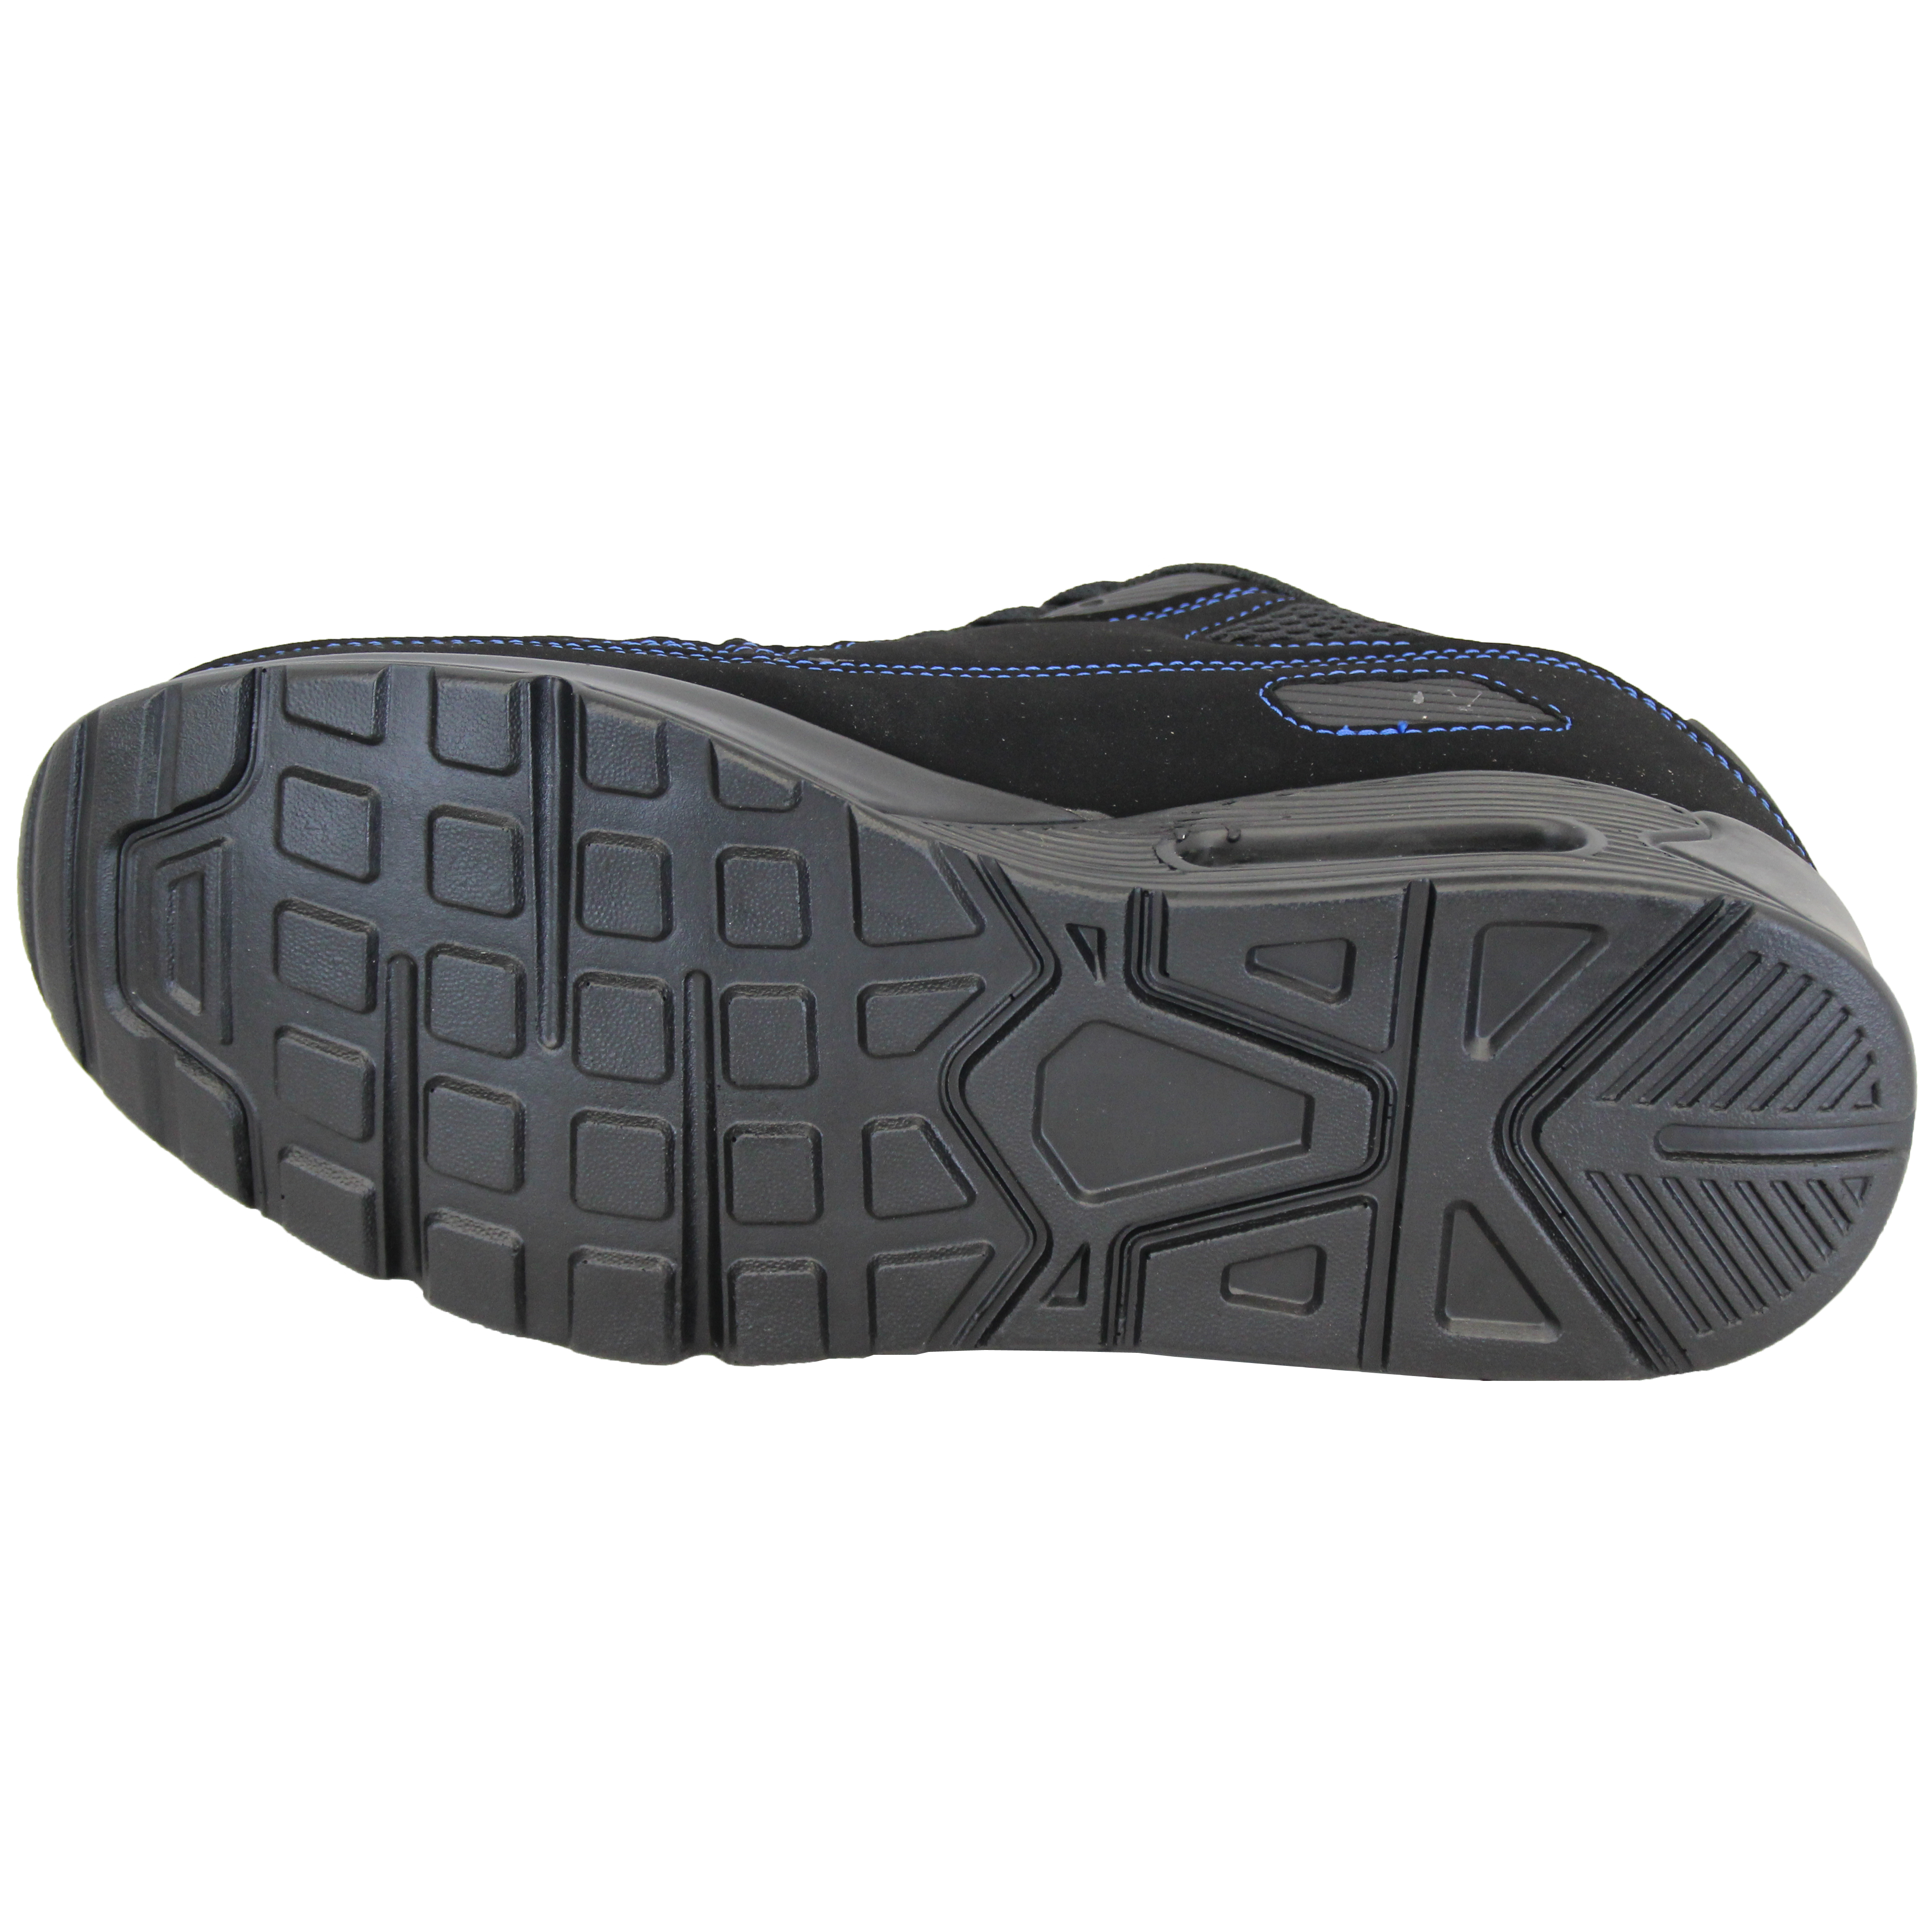 Mens-Bubble-Trainers-Lace-Up-Running-Shoes-Mesh-Jogging-Sports-Gym-Casual-New thumbnail 8